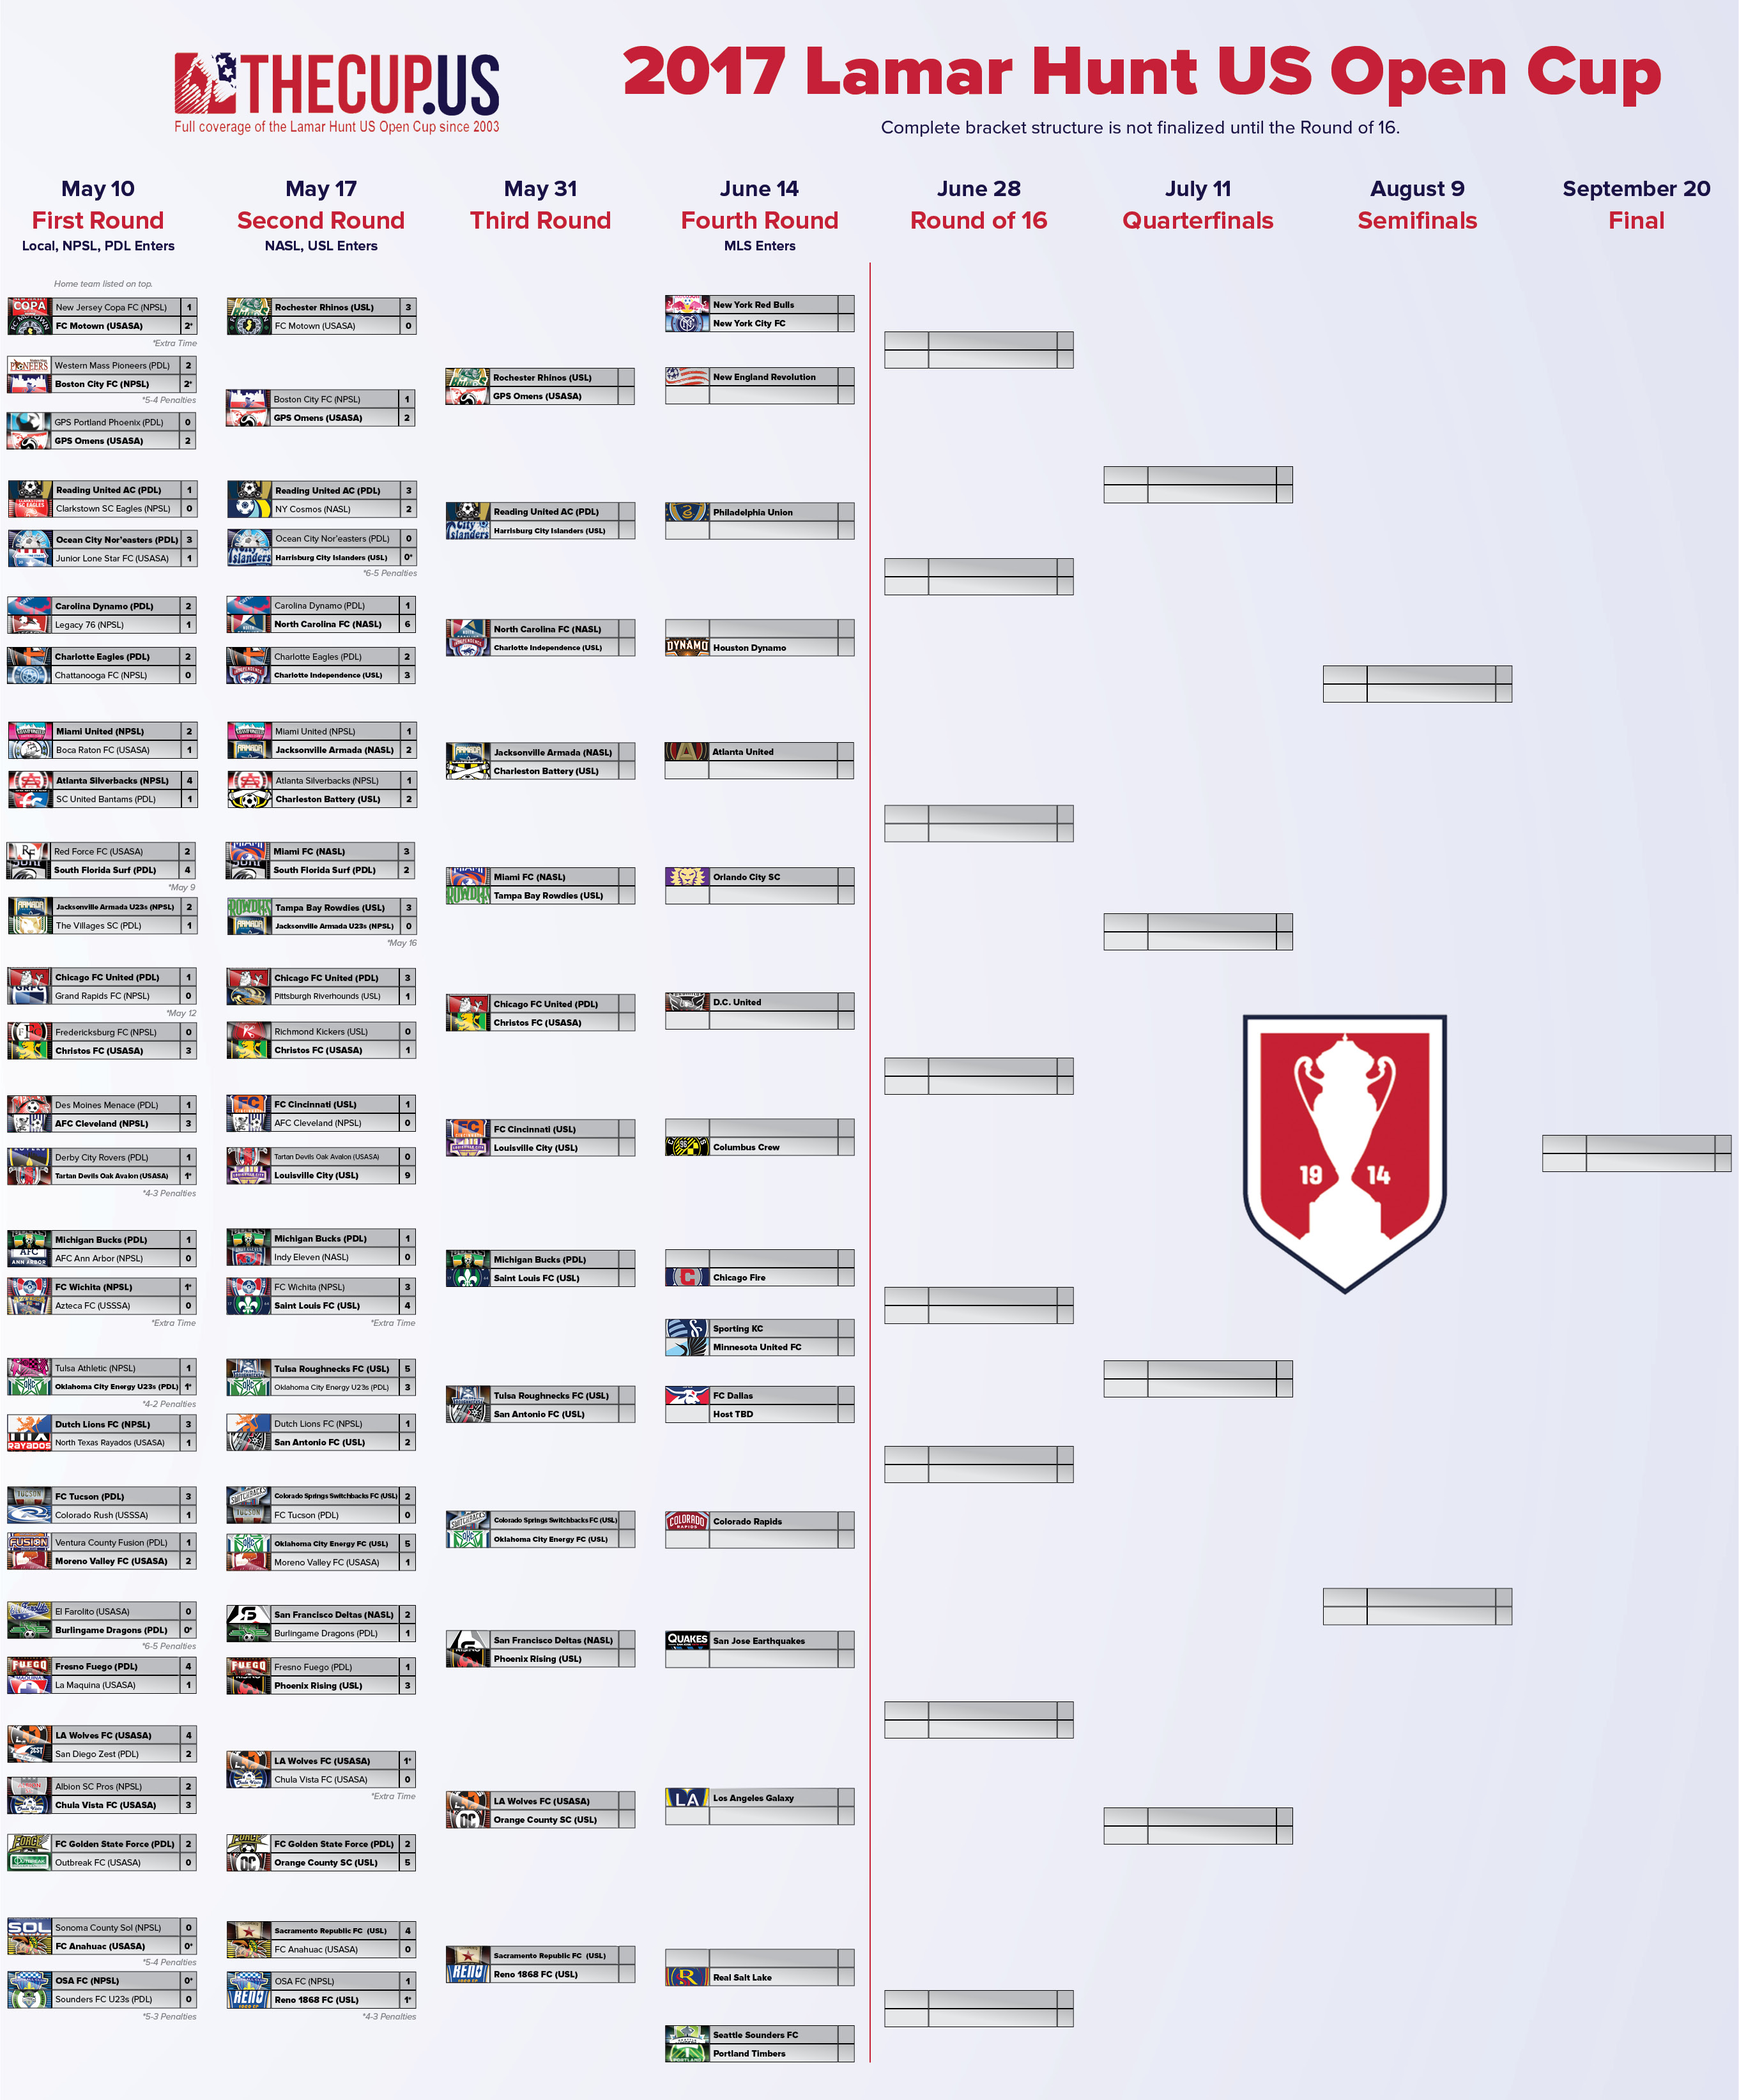 2017 US Open Cup bracket before Round 4